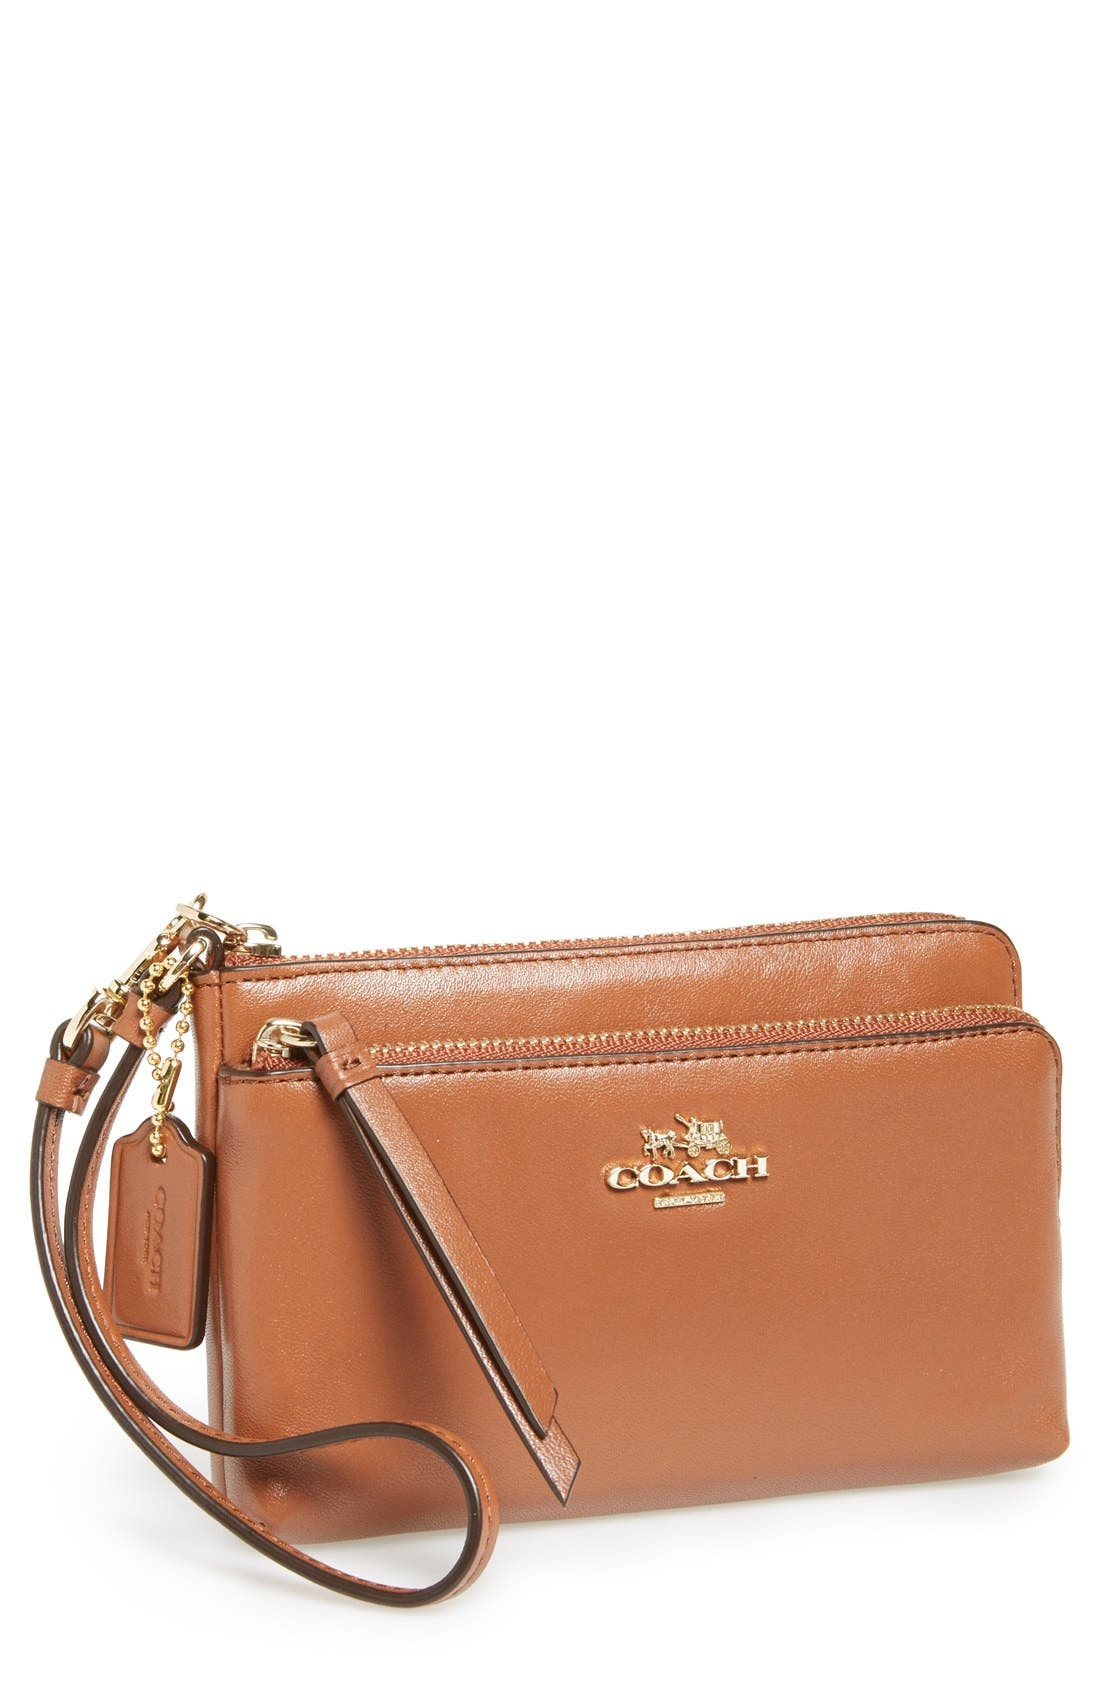 Alternate Image 1 Selected - COACH Leather Wristlet